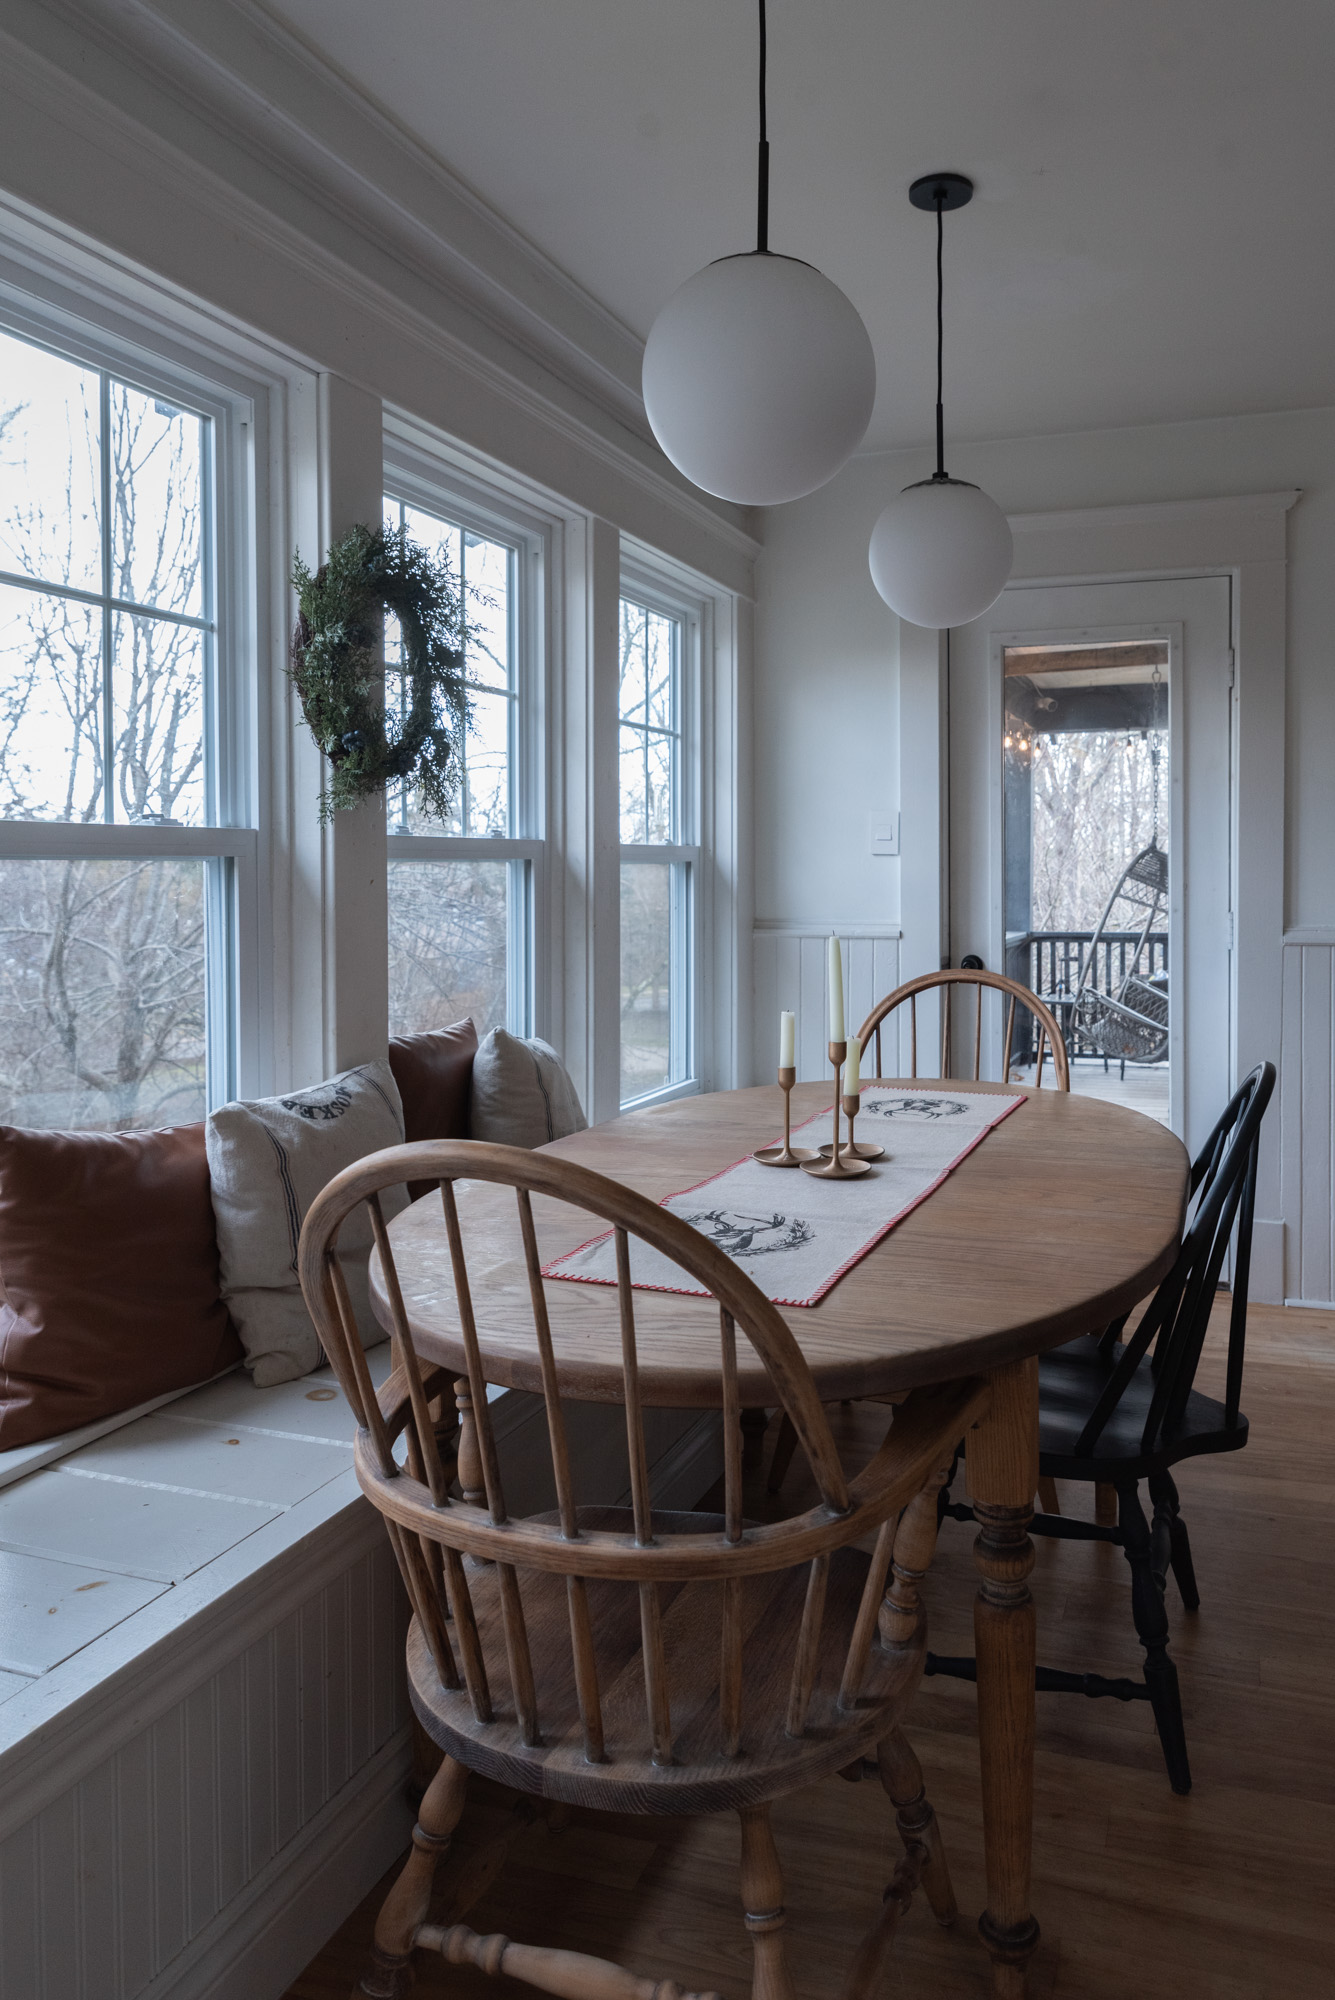 The Wild decoelis | 2020 Holiday Home Tour | Antique kitchen table with reindeer runner wreath and antique golden candlesticks